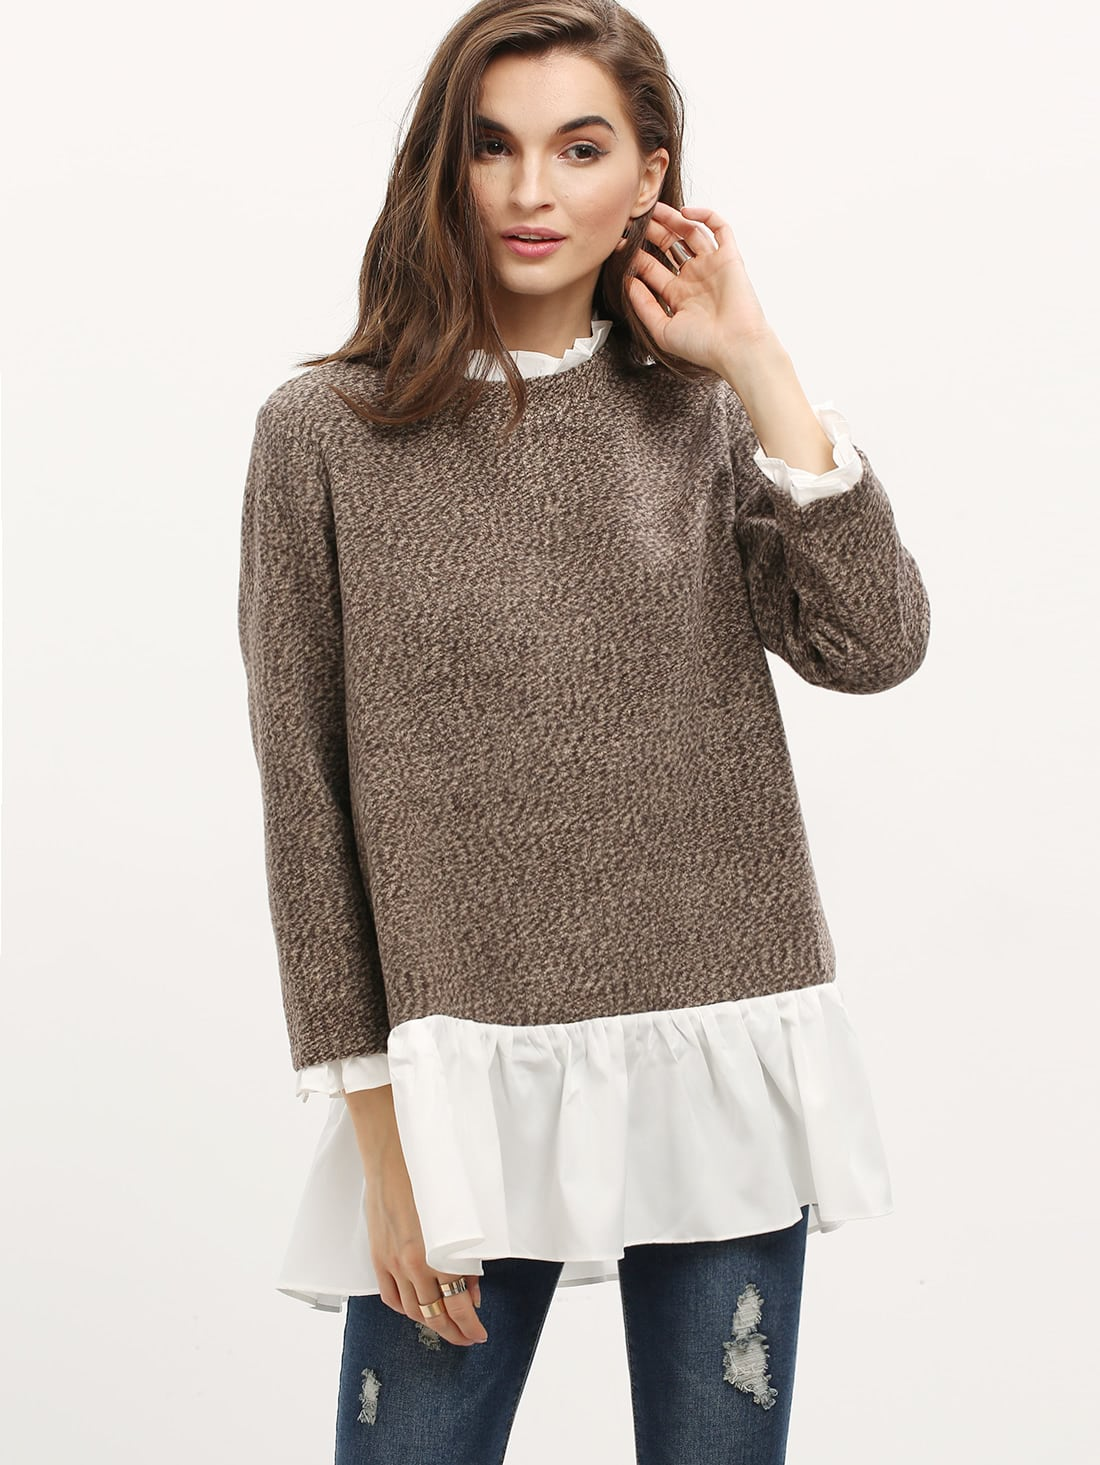 Contrast Frill Neck And Hem Sweater sweater151027504